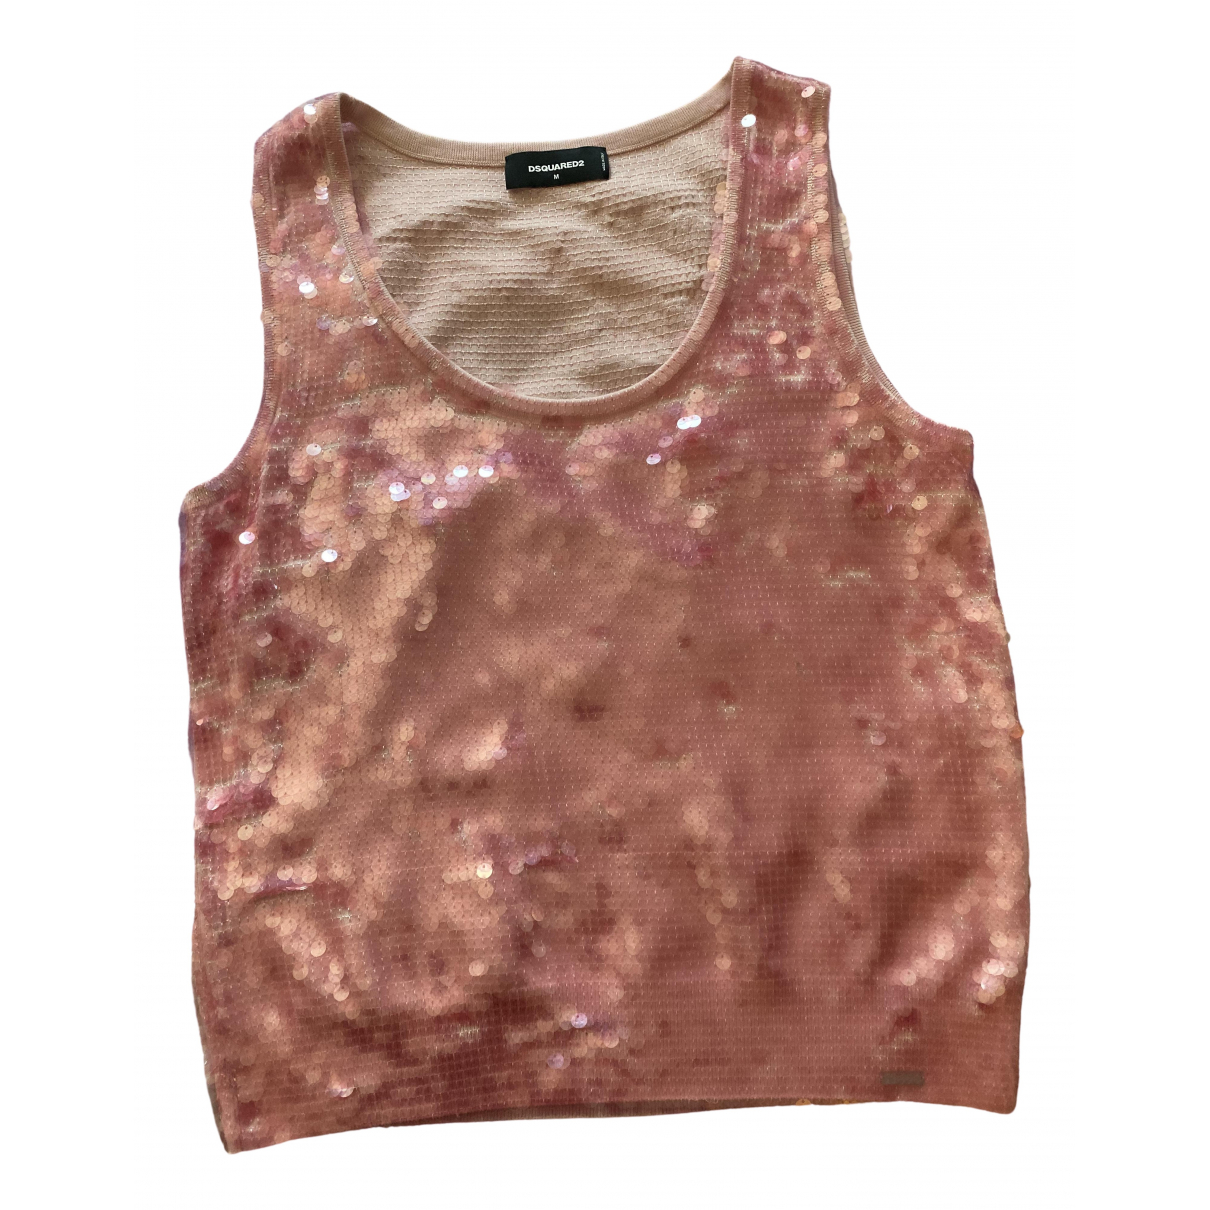 Dsquared2 \N Pink Glitter  top for Women M International